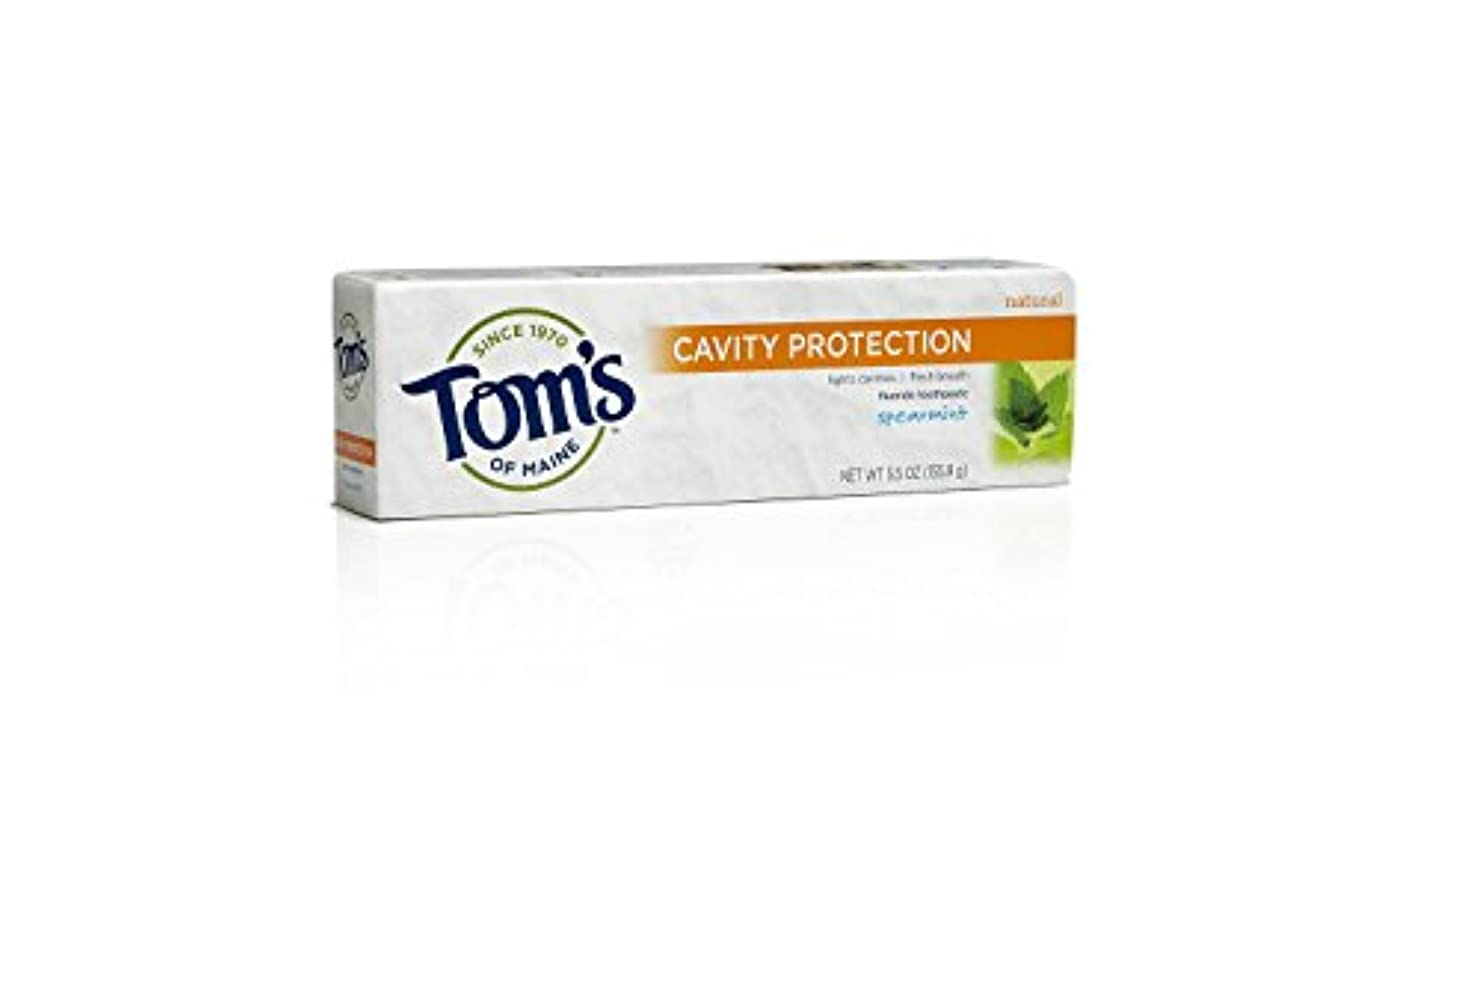 トレッド国籍まだらTom's of Maine, Cavity Protection Fluoride Toothpaste, Spearmint, 5.5 oz (155.9 g)